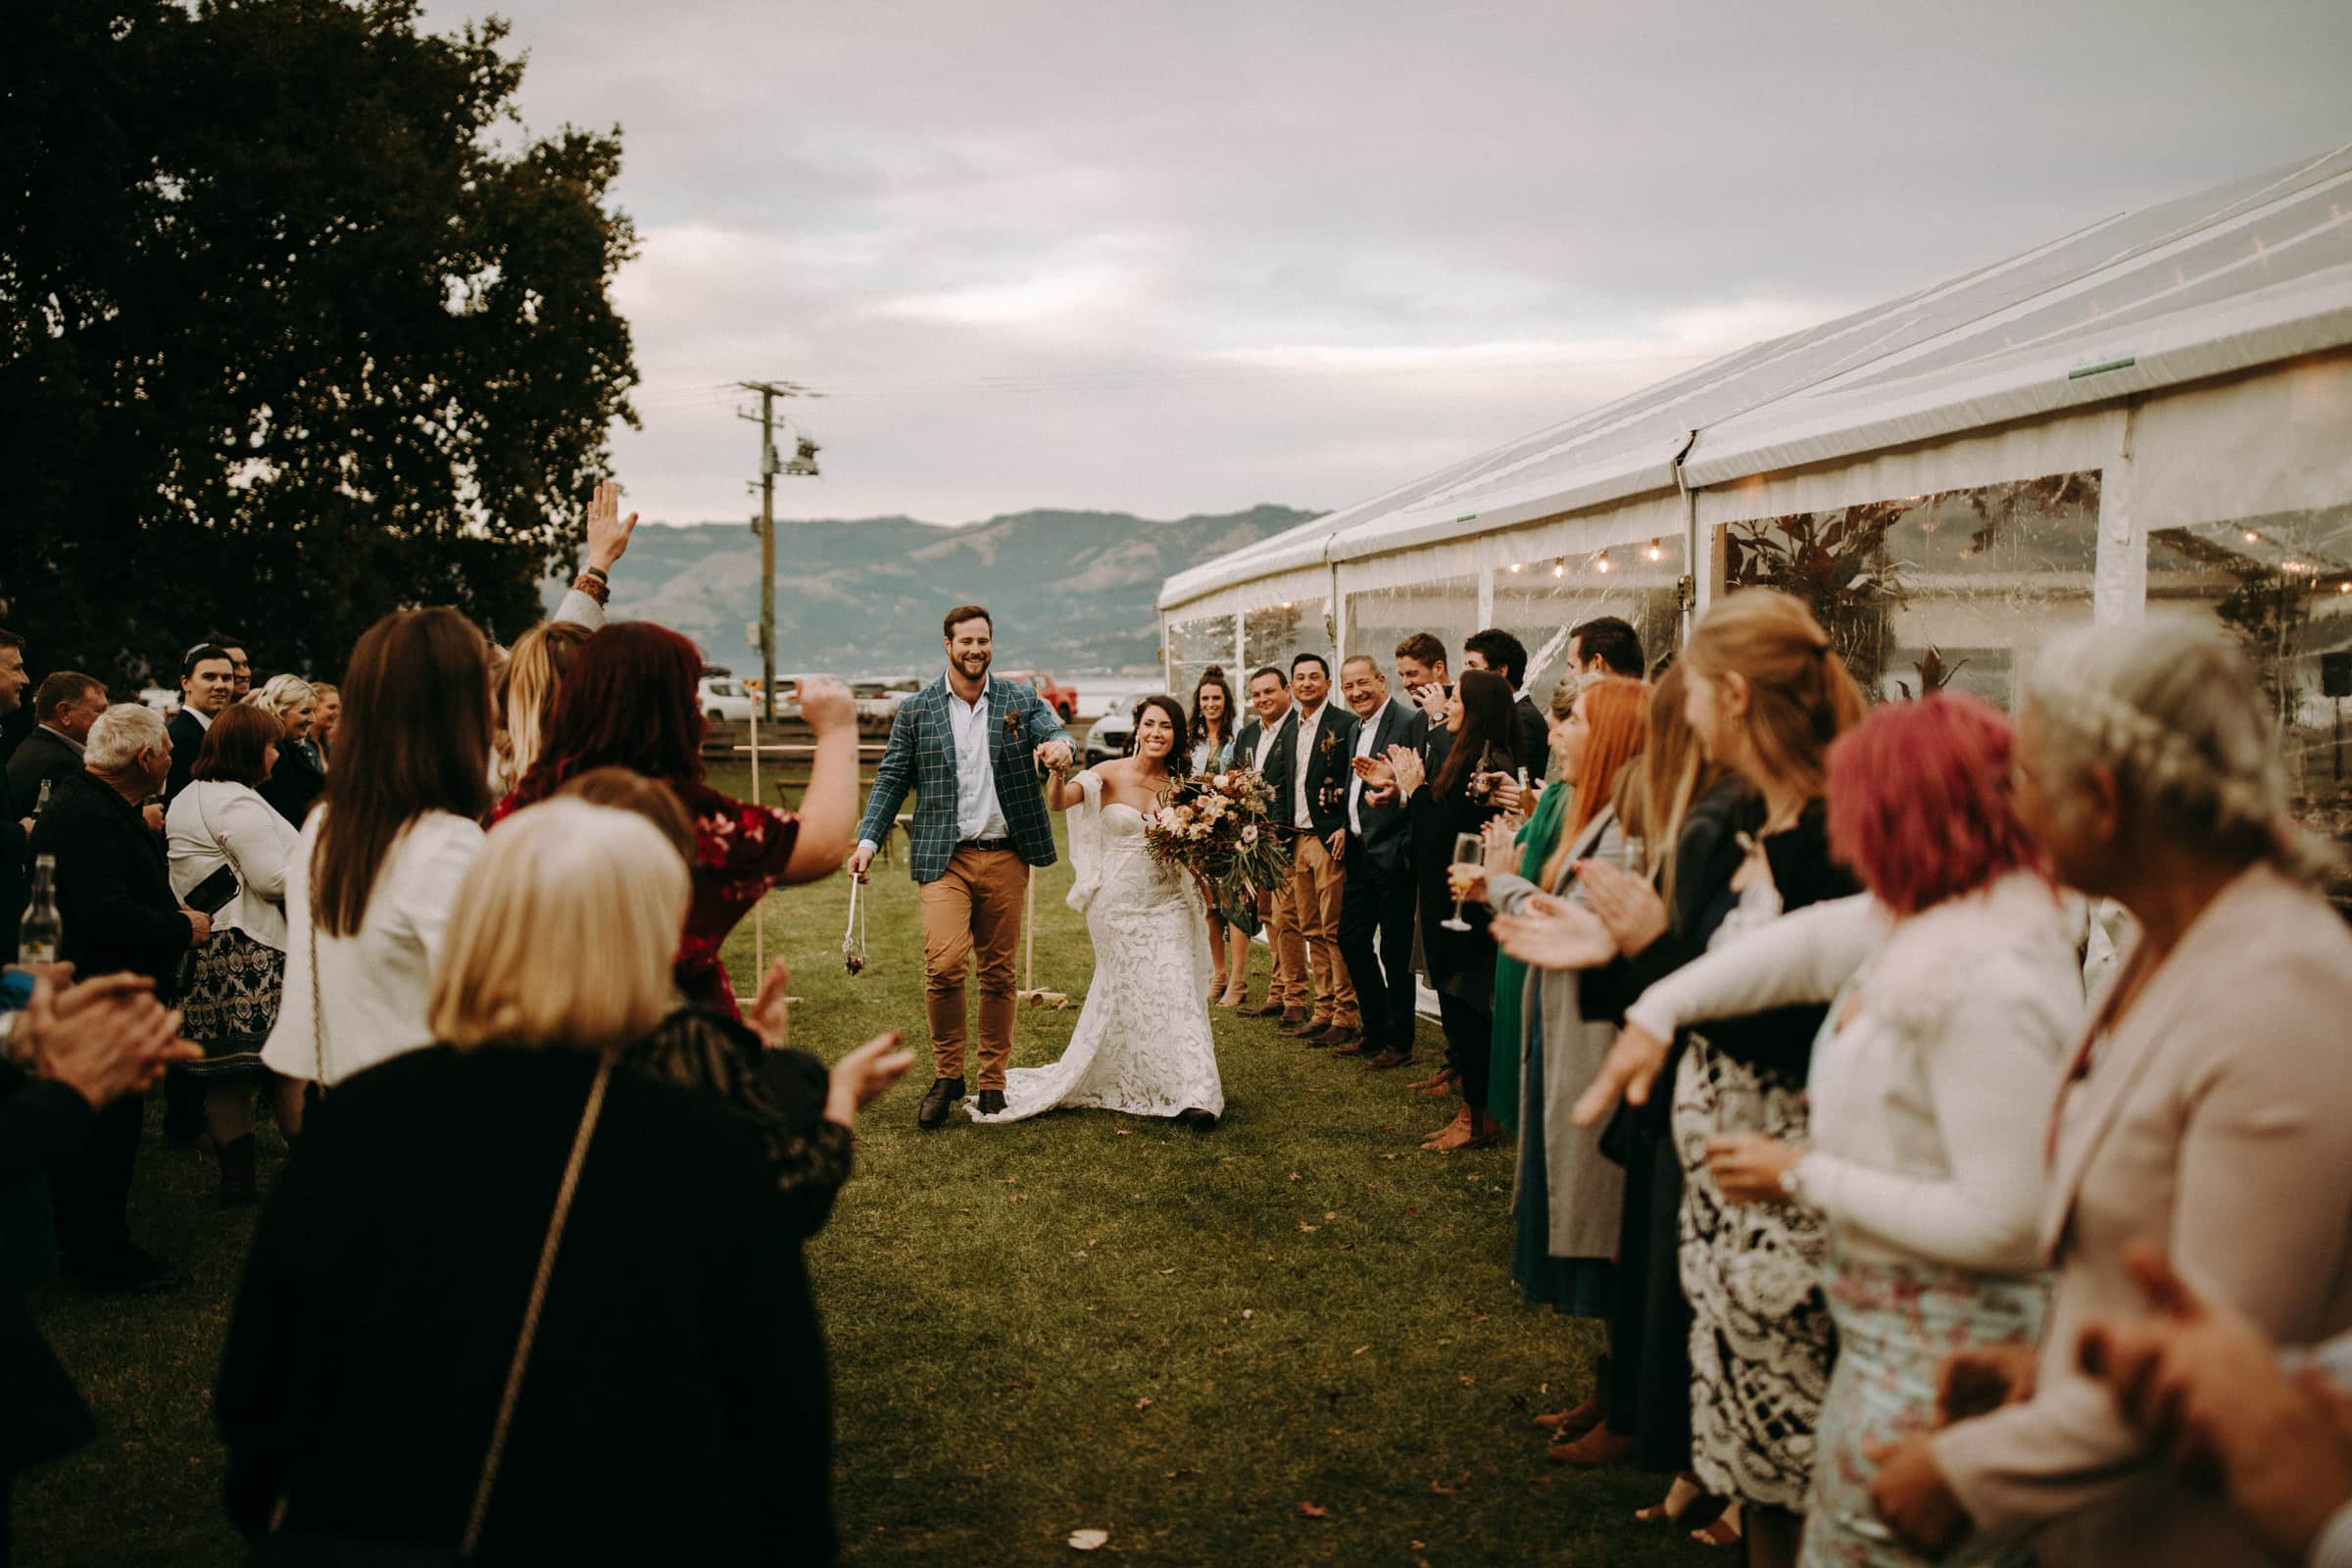 A newly wedded couple is walking towards their wedding guests next to a tent.